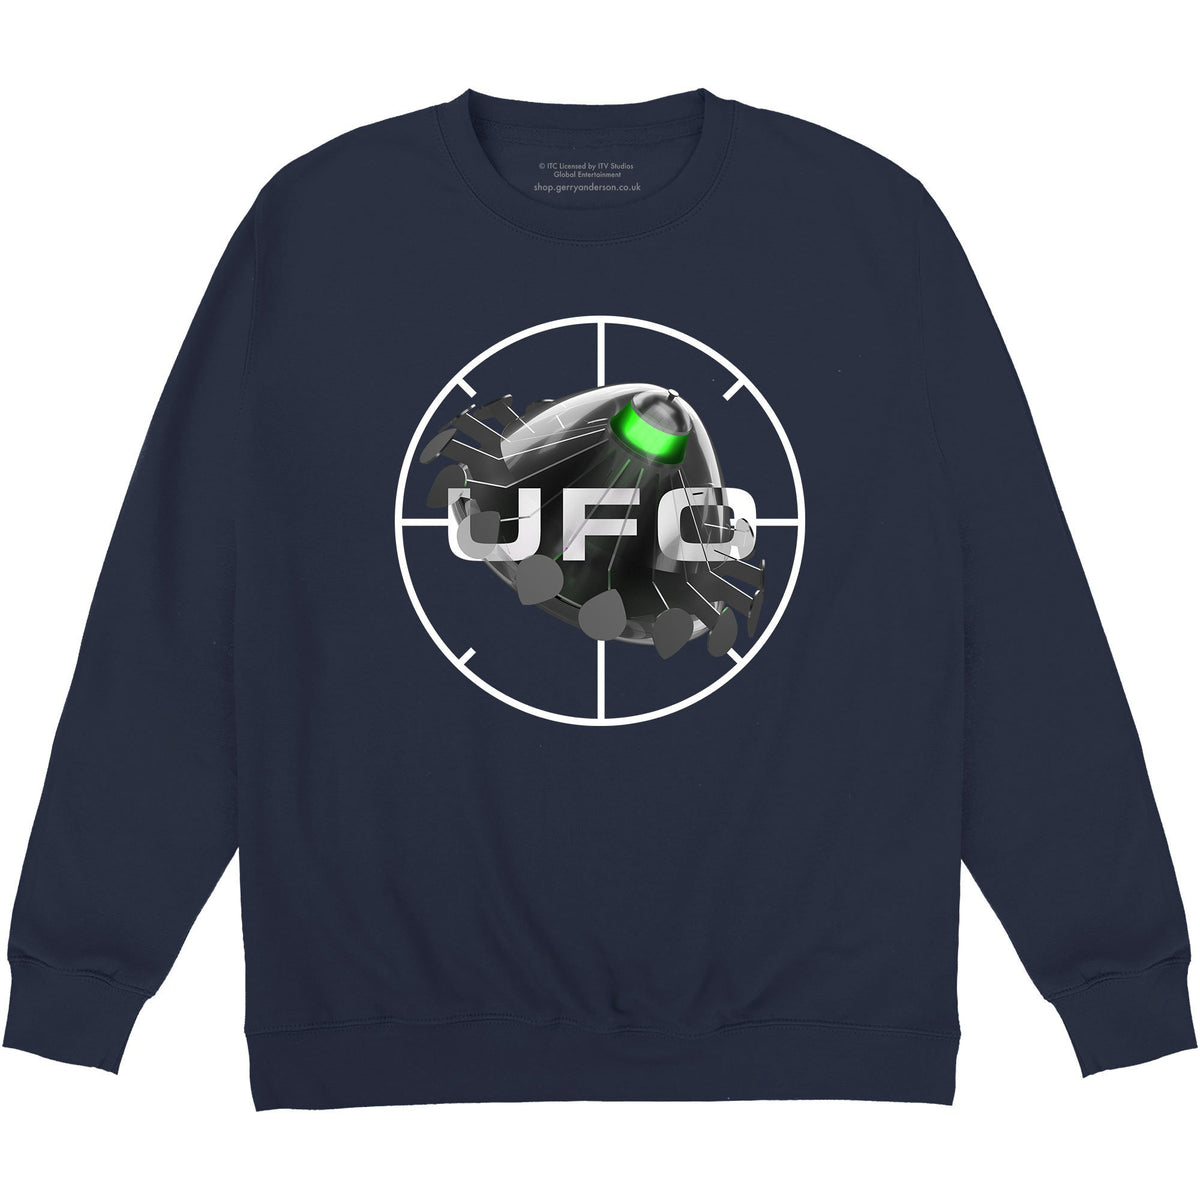 UFO Target Sweatshirt [Official & Exclusive] - The Gerry Anderson Store